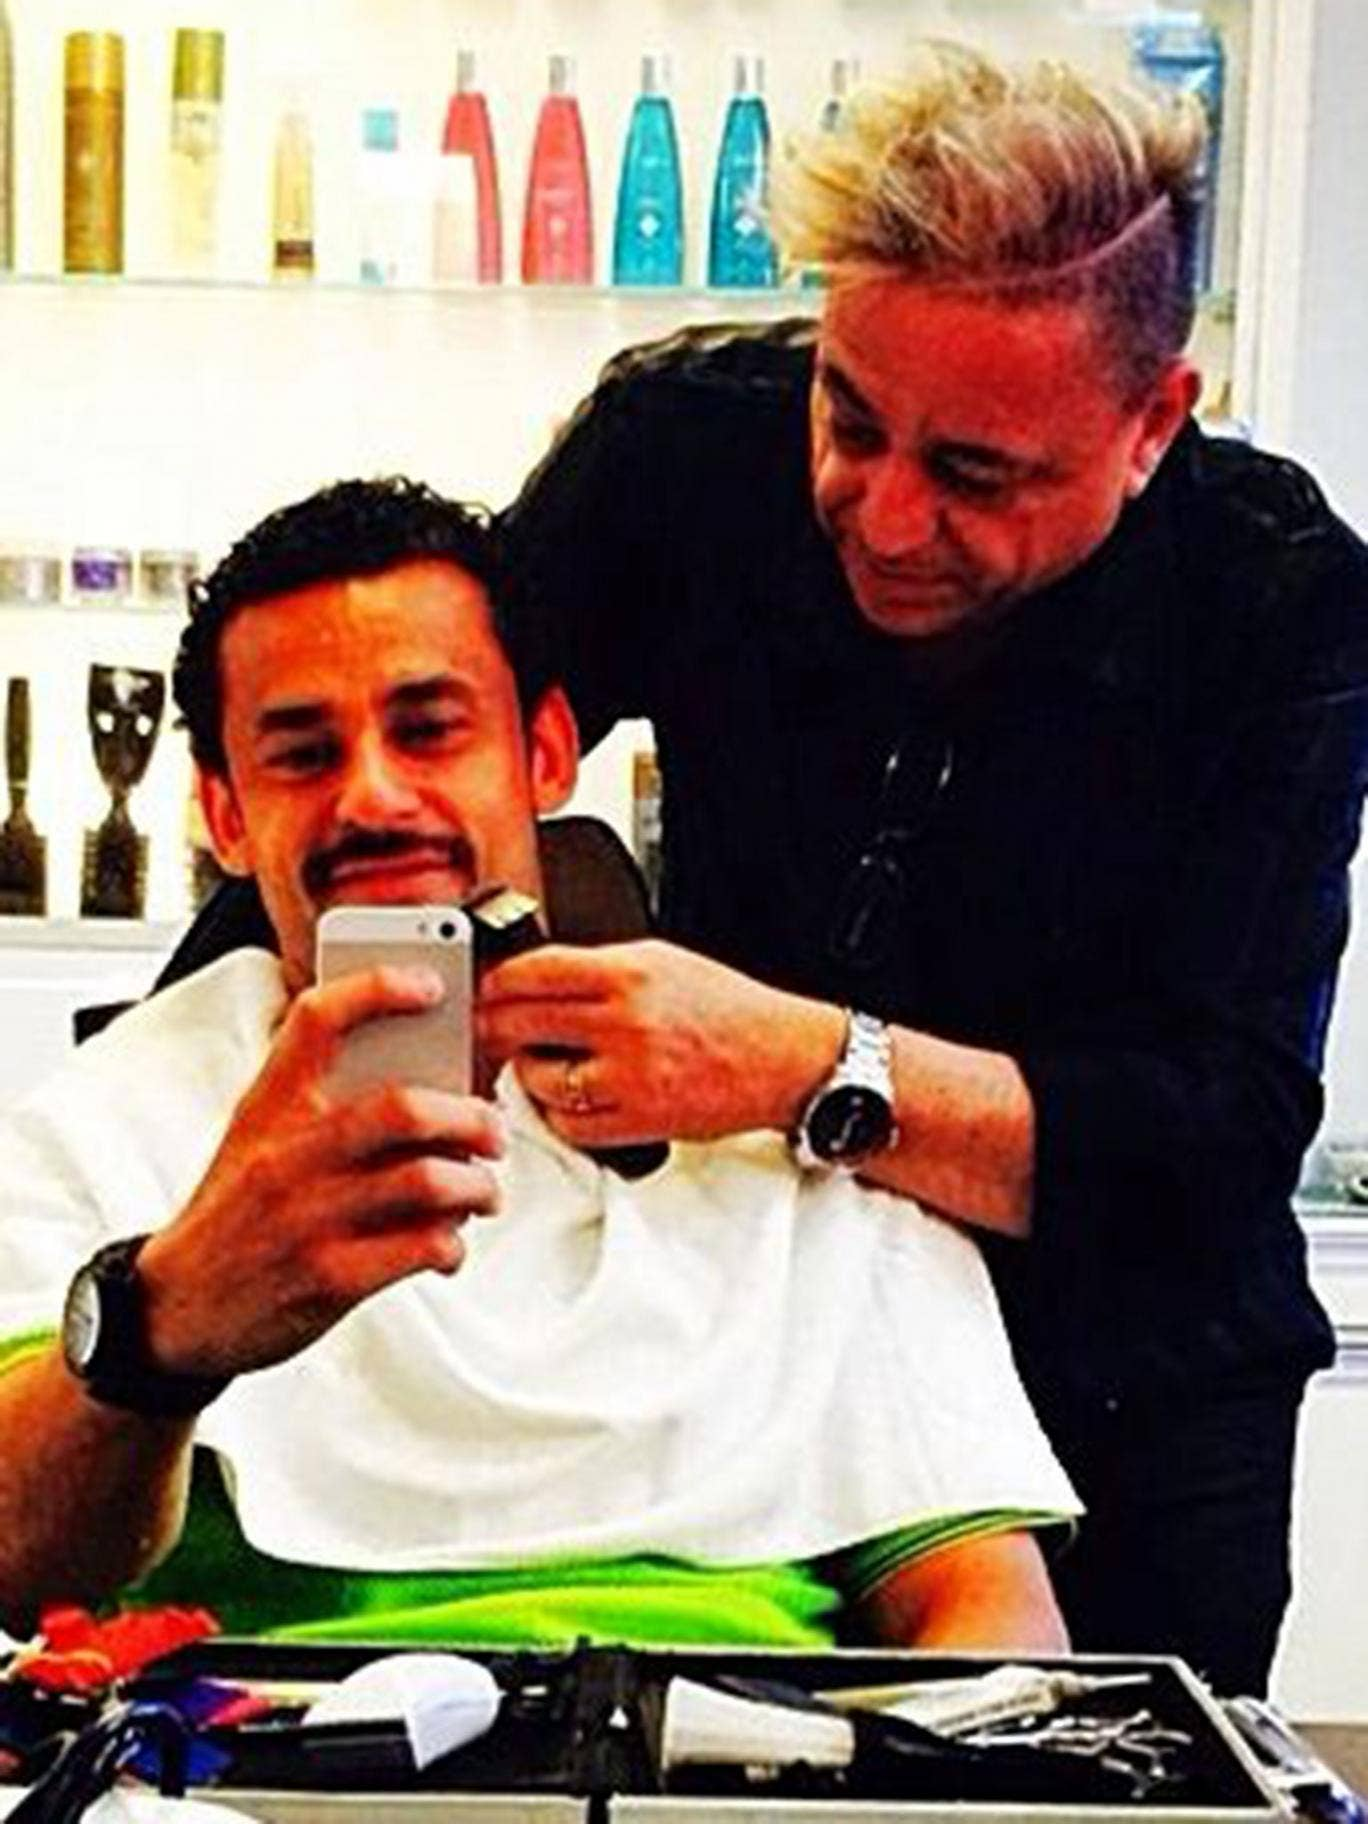 Fred getting his moustache at the barber shop